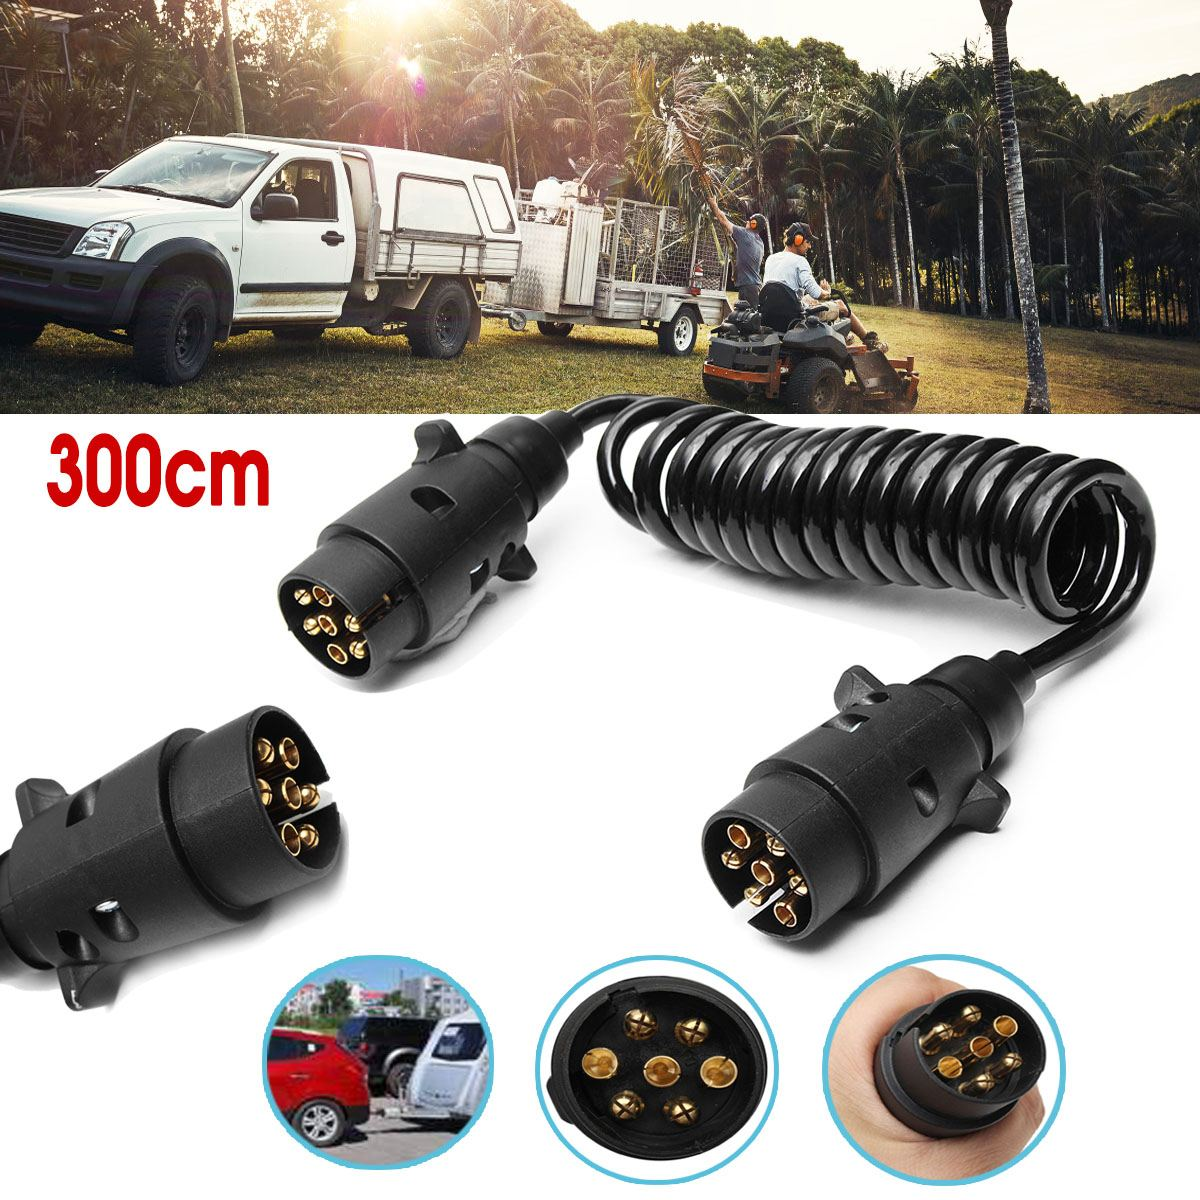 US $13 48 7% OFF|300cm 7 Pin Trailer Light Board Extension Cable Lead Truck  Plug Socket Wire Part-in Trailer Couplings & Accessories from Automobiles